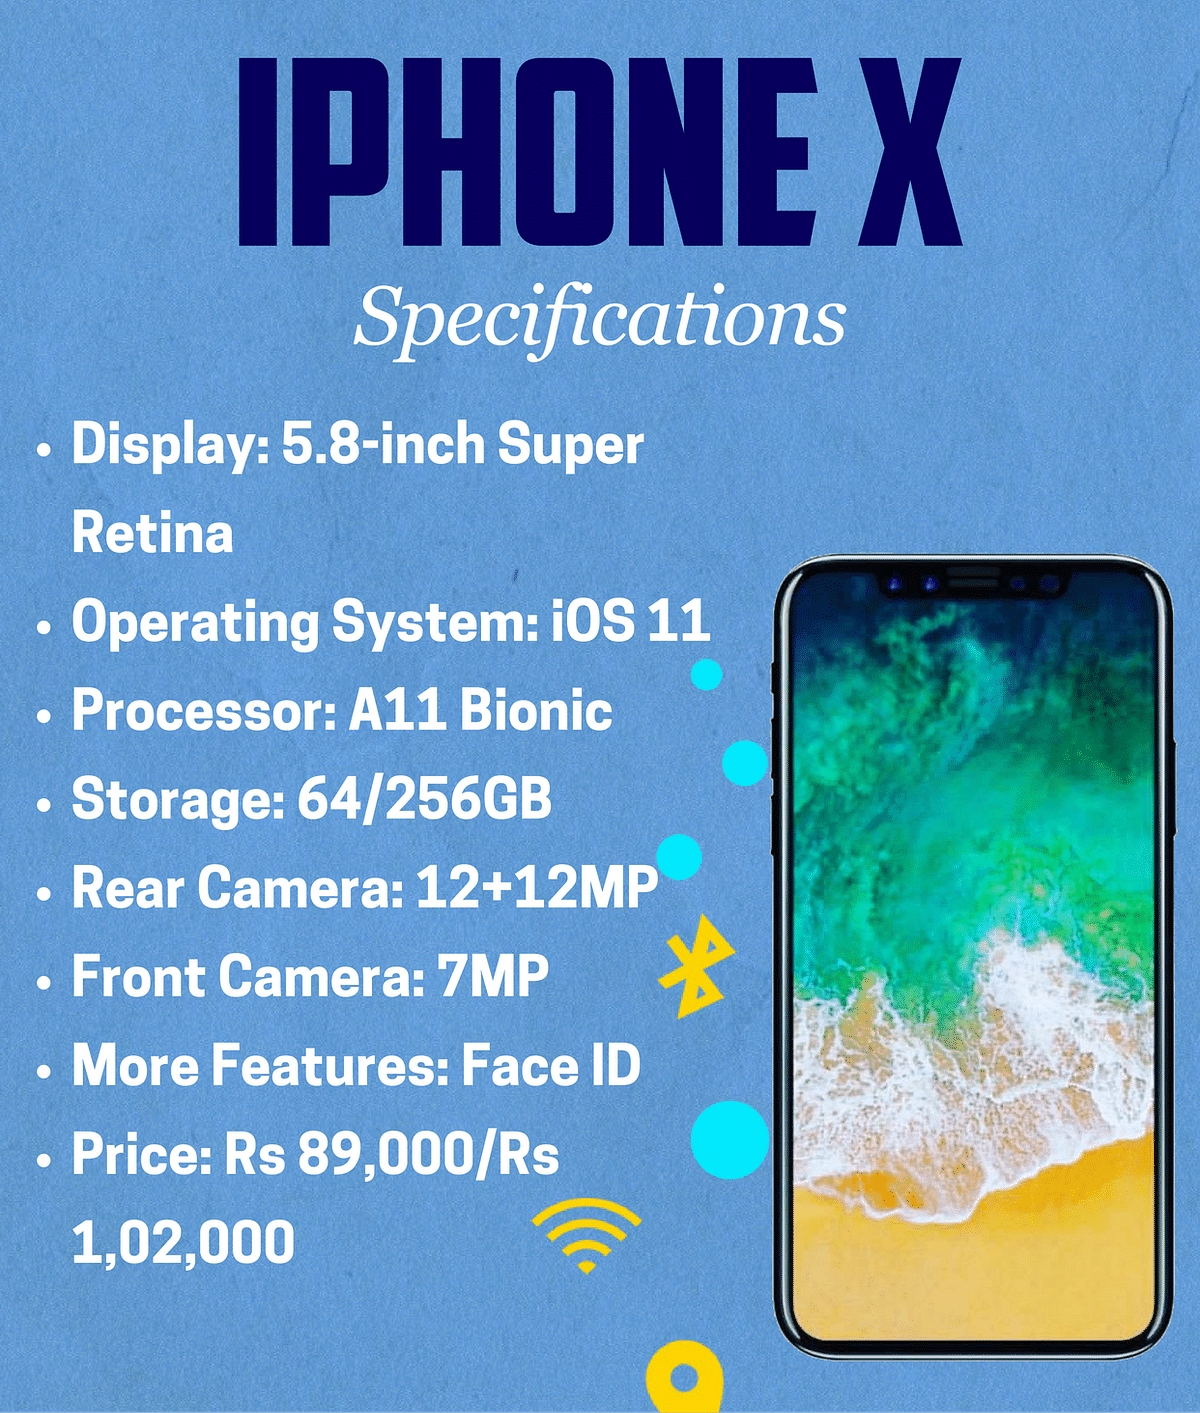 Specifications of the iPhone X.